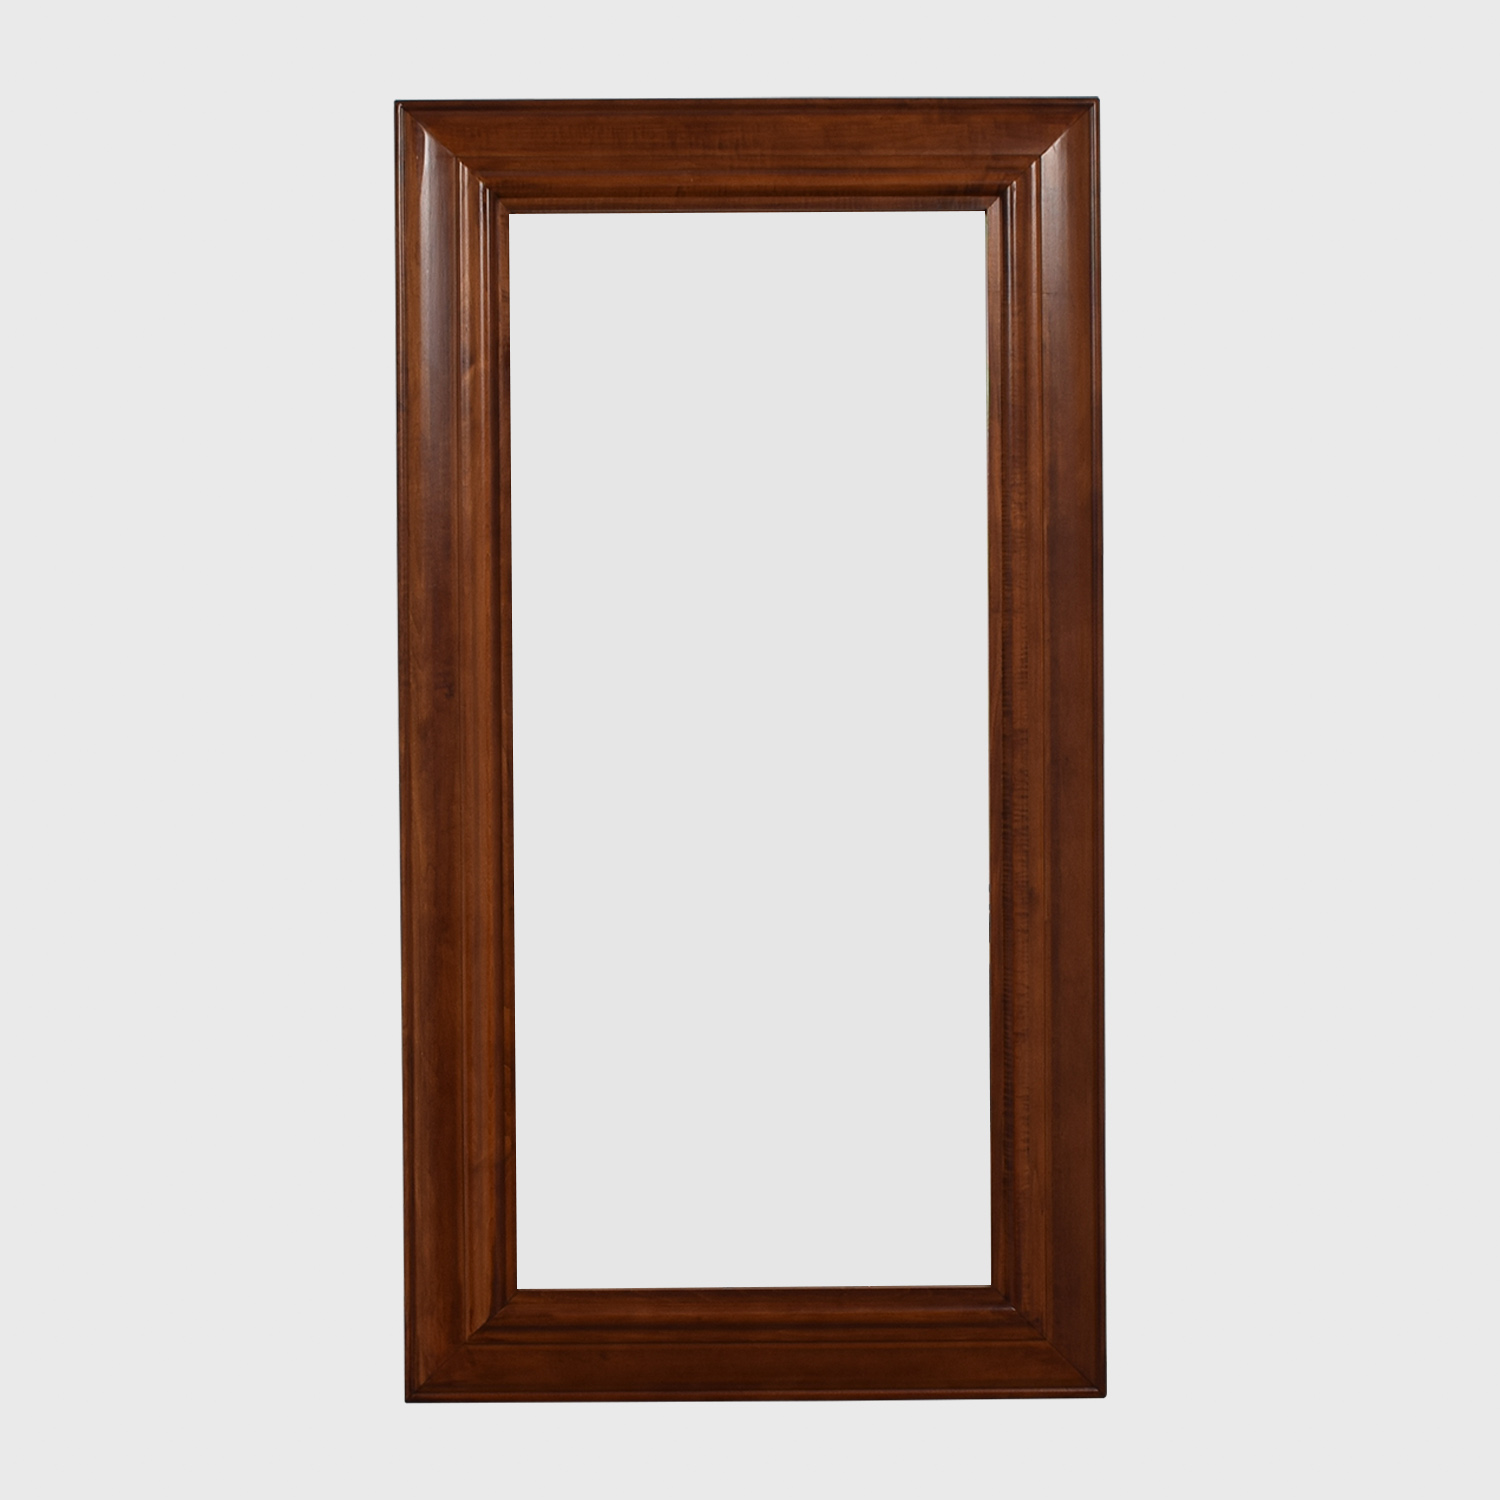 Pottery Barn Solano Wood Framed Floor Mirror sale